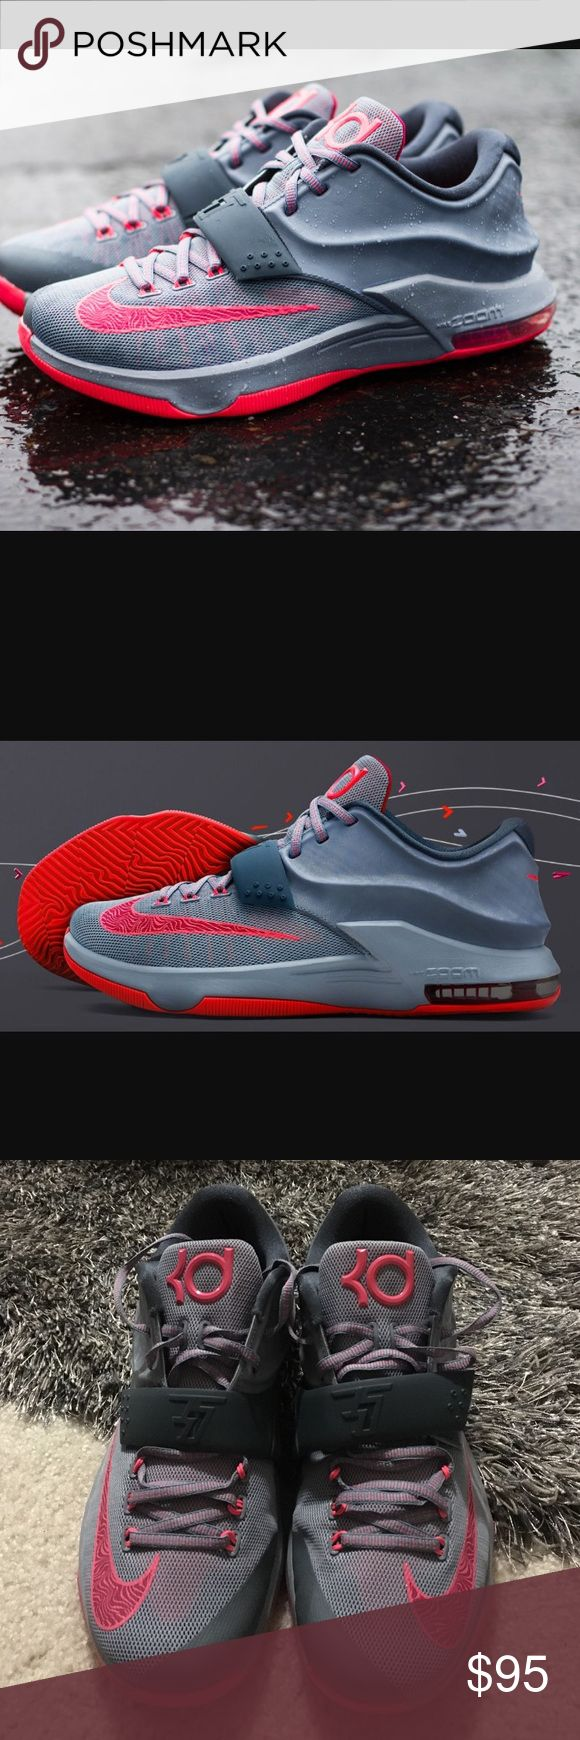 Kevin Durant 7 Calm Before the Storm What a deal! These sneakers are just as new! Make an offer via offer button. No trades. Great Condition.  No box Nike Shoes Sneakers